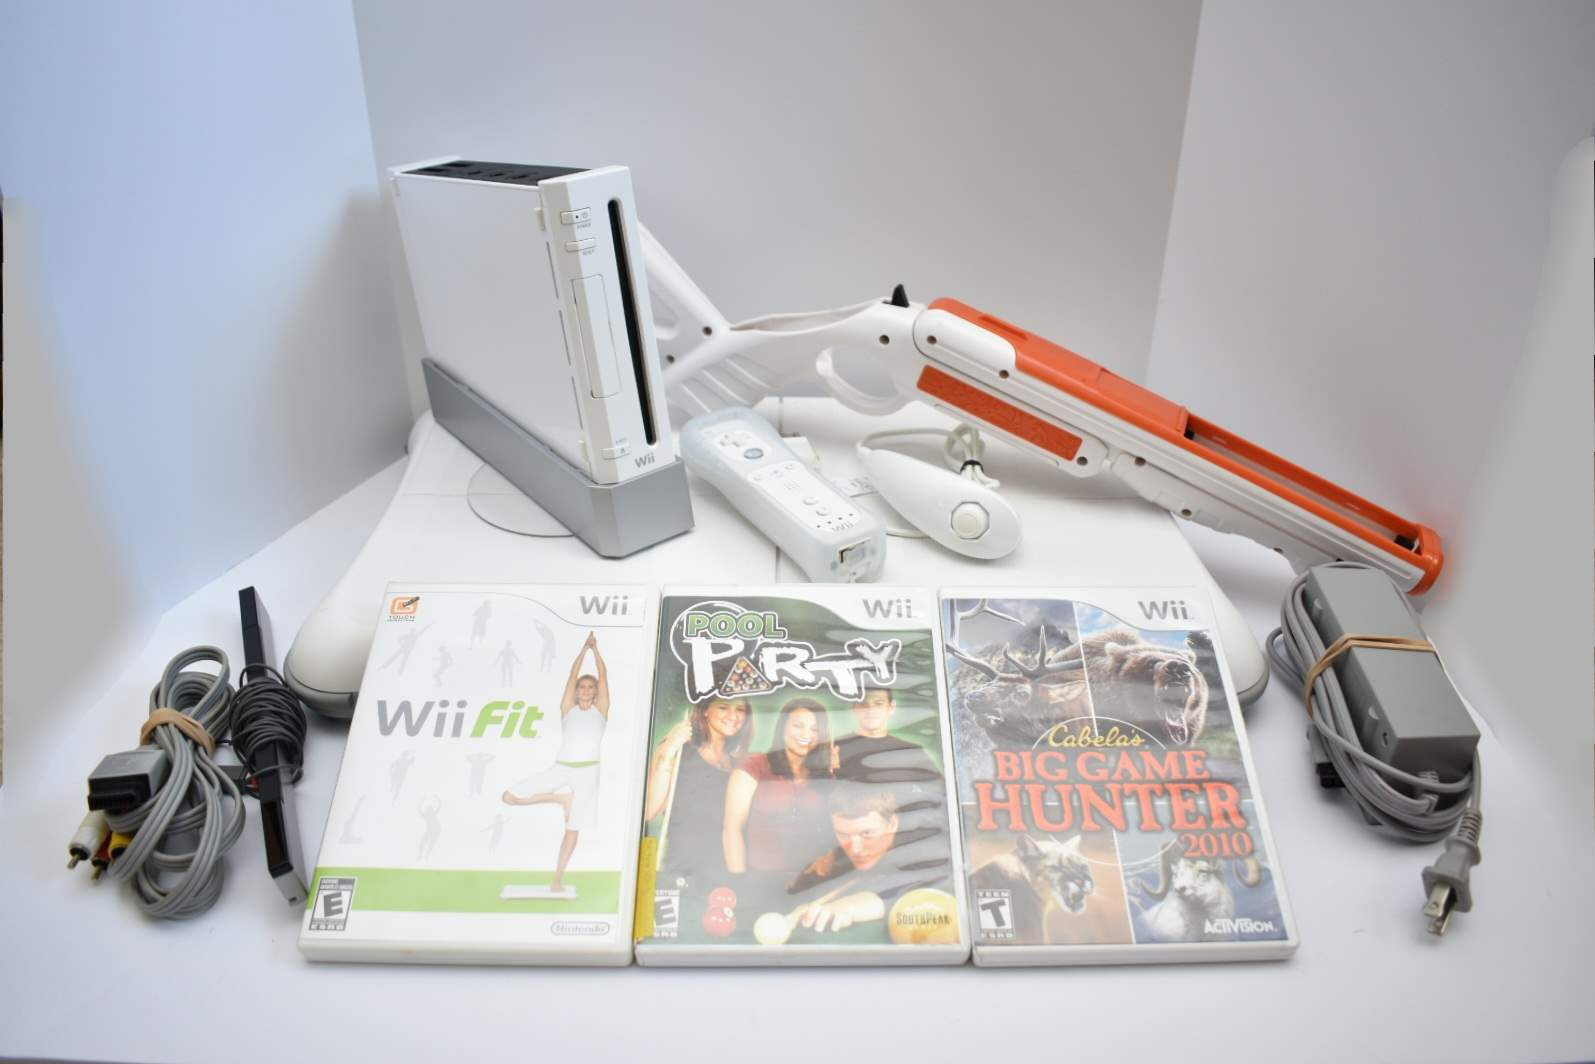 Nintendo Wii Bundle with Wii Fit Board and Cabela's Gun